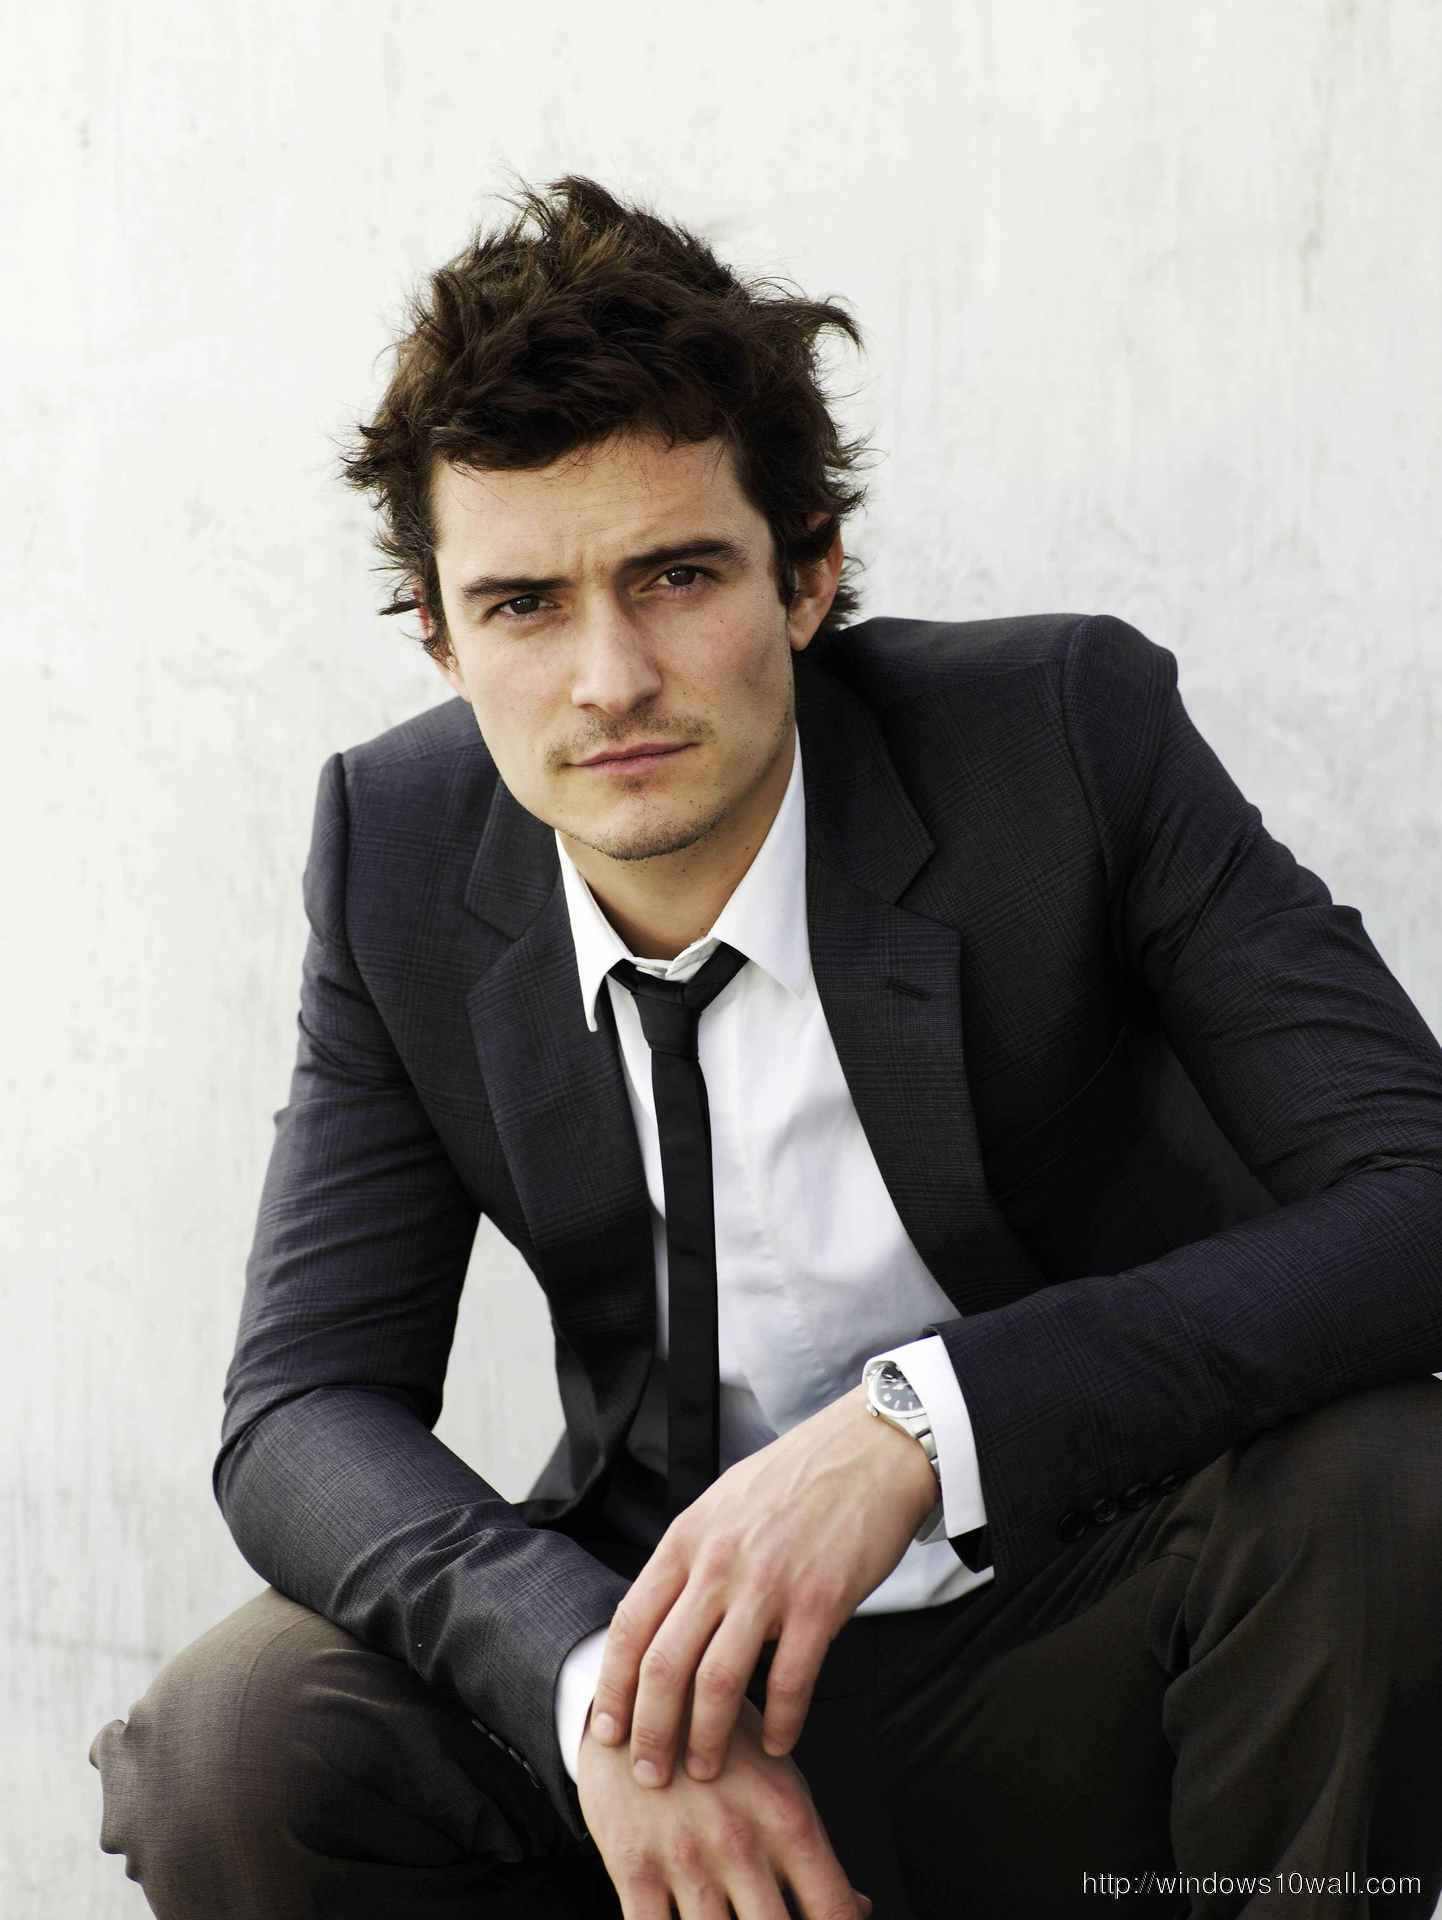 Orlando Bloom Mobile iPhone Wallpaper